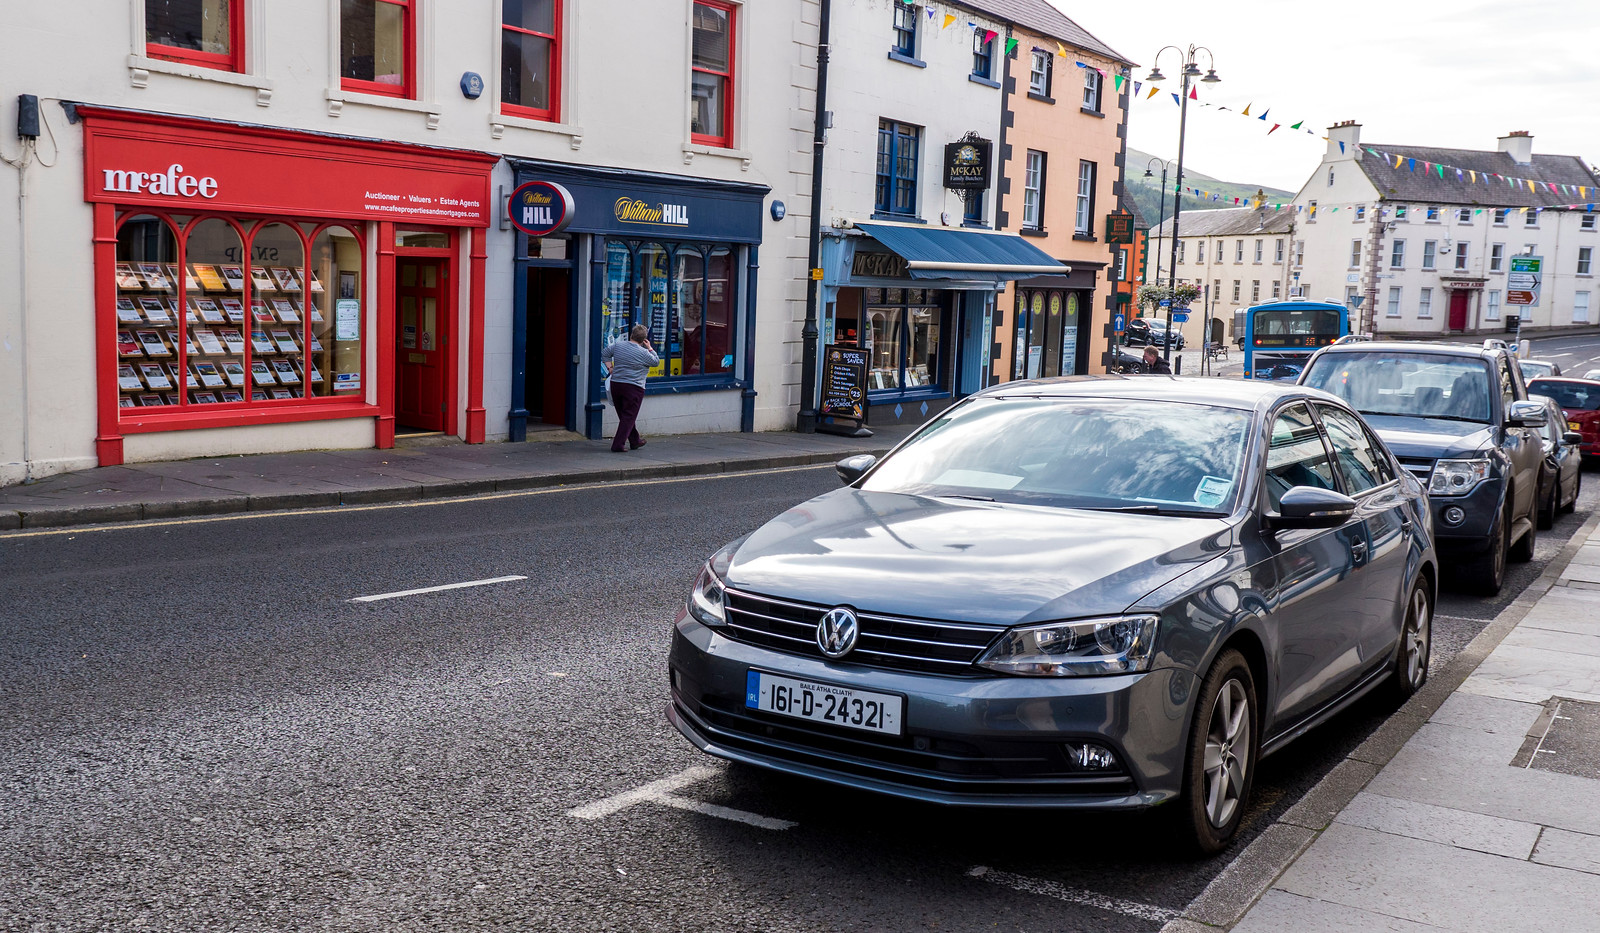 Renting a Car in Ireland: Experiences and Helpful Tips